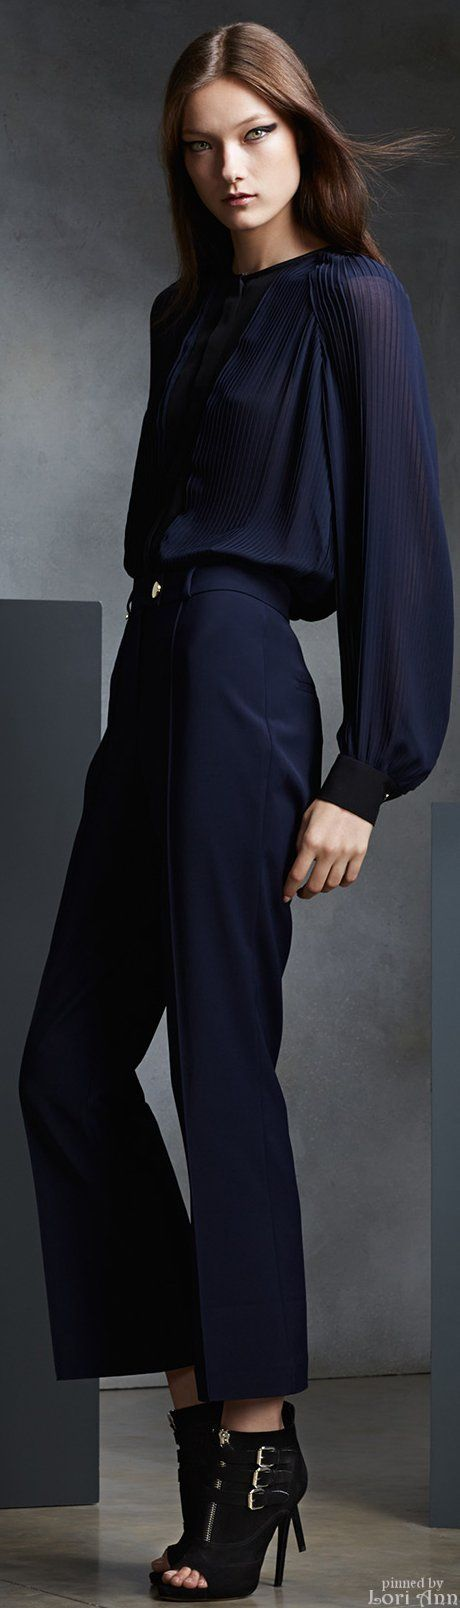 Issa Pre-Fall 2015. So this blouse is beautiful. The pants make me think of my grandmother. Not when she was young and chic either.